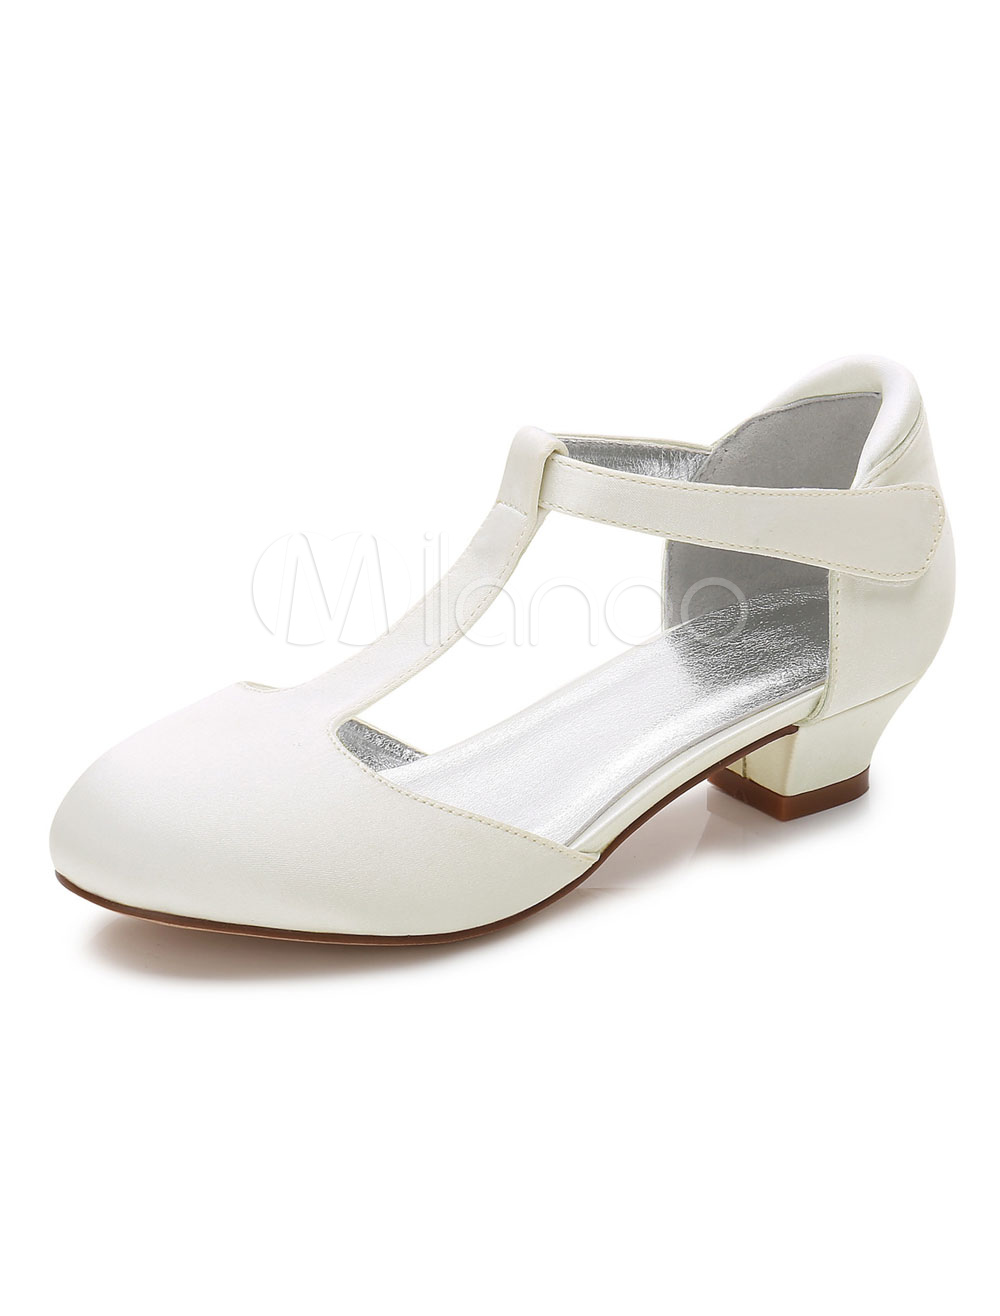 Ivory Wedding Flower Girl Shoes Satin Round Toe T Type Girl Shoes Party Shoes